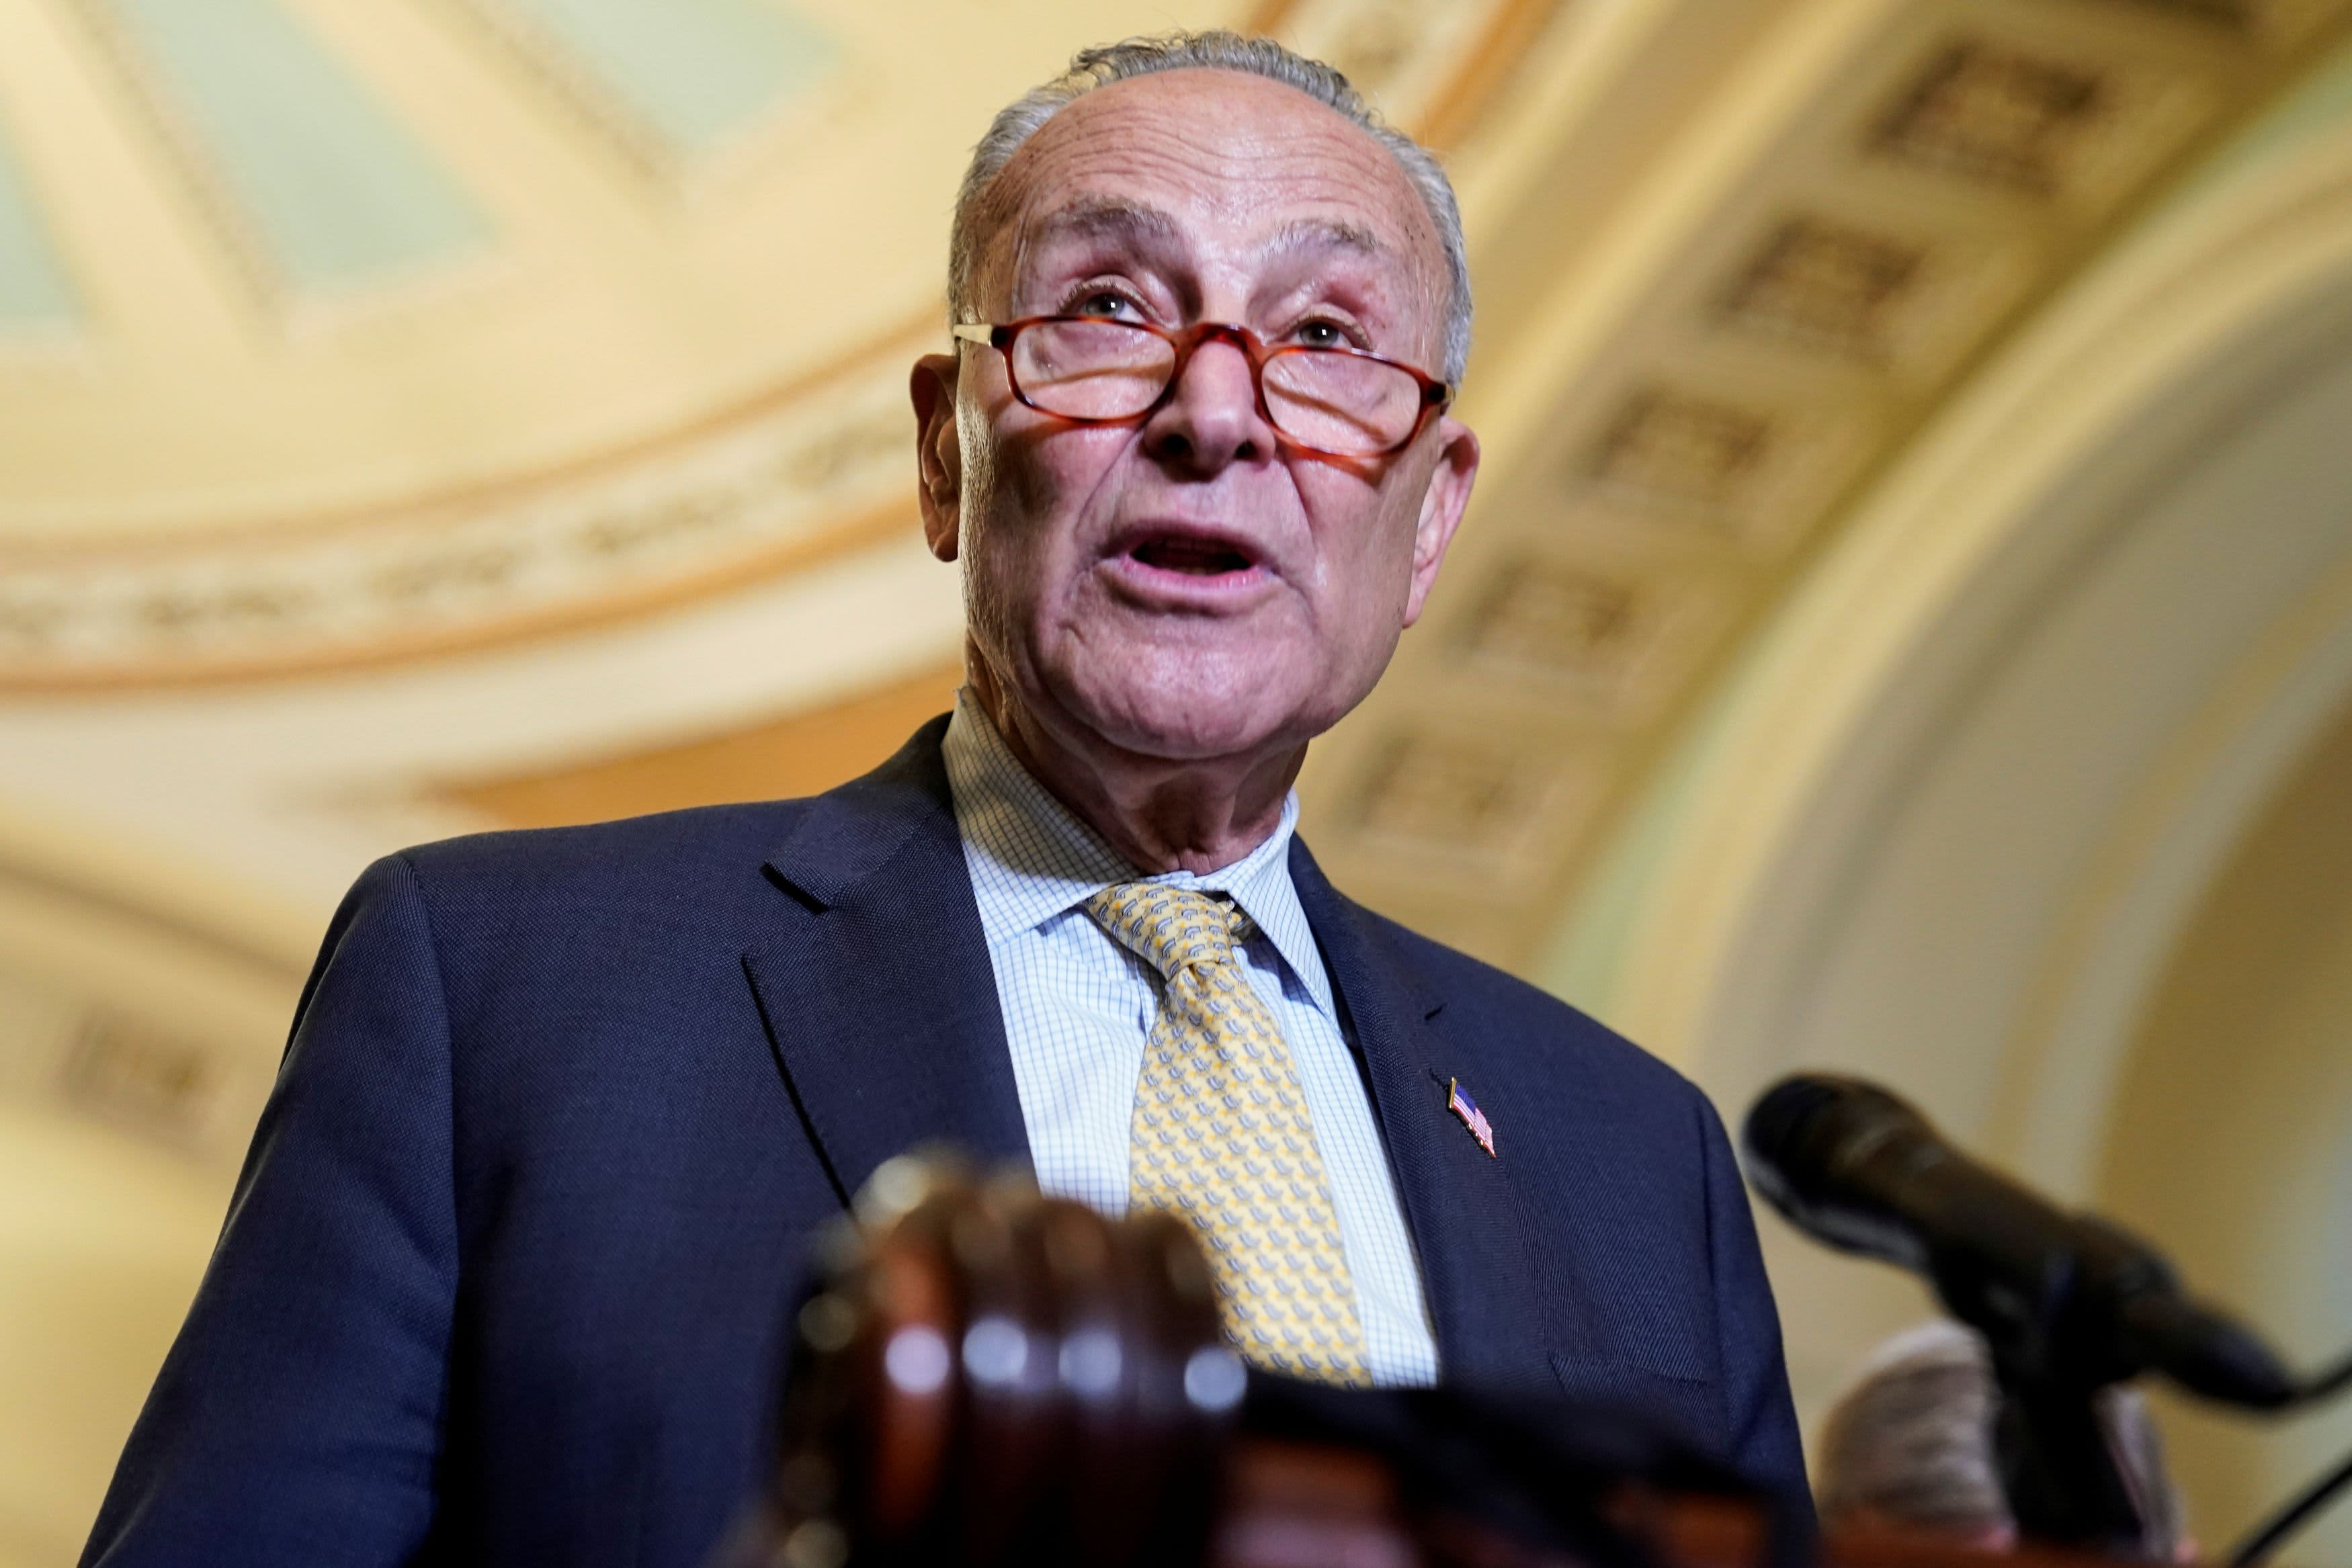 Senators will get the job done on infrastructure, Schumer says